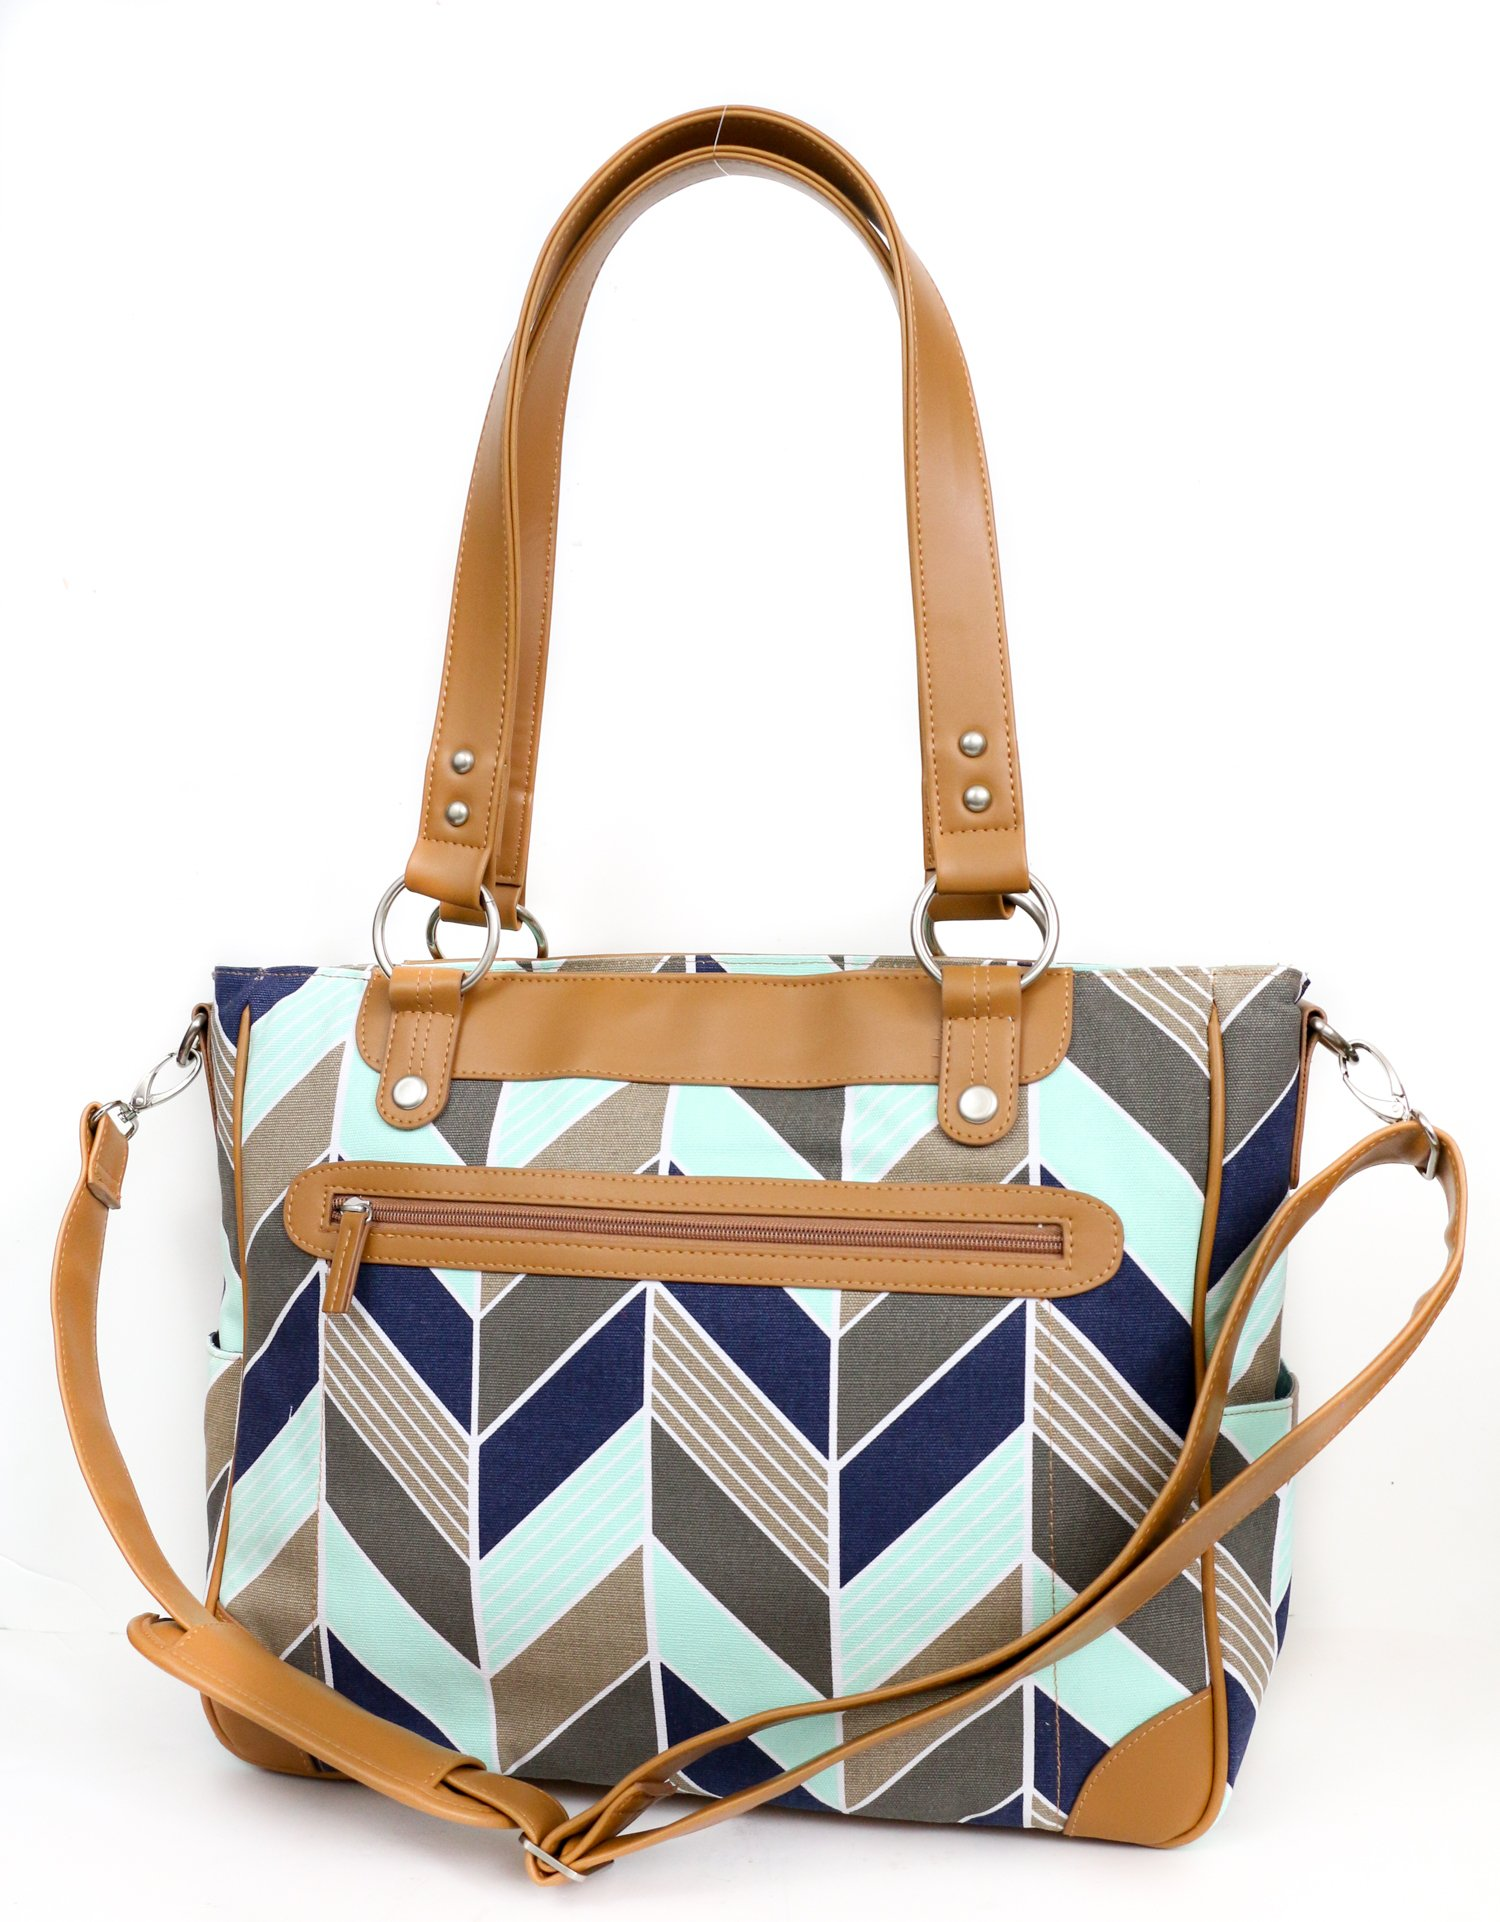 Kailo Chic Camera and Laptop Tote in Navy and Mint Herringbone